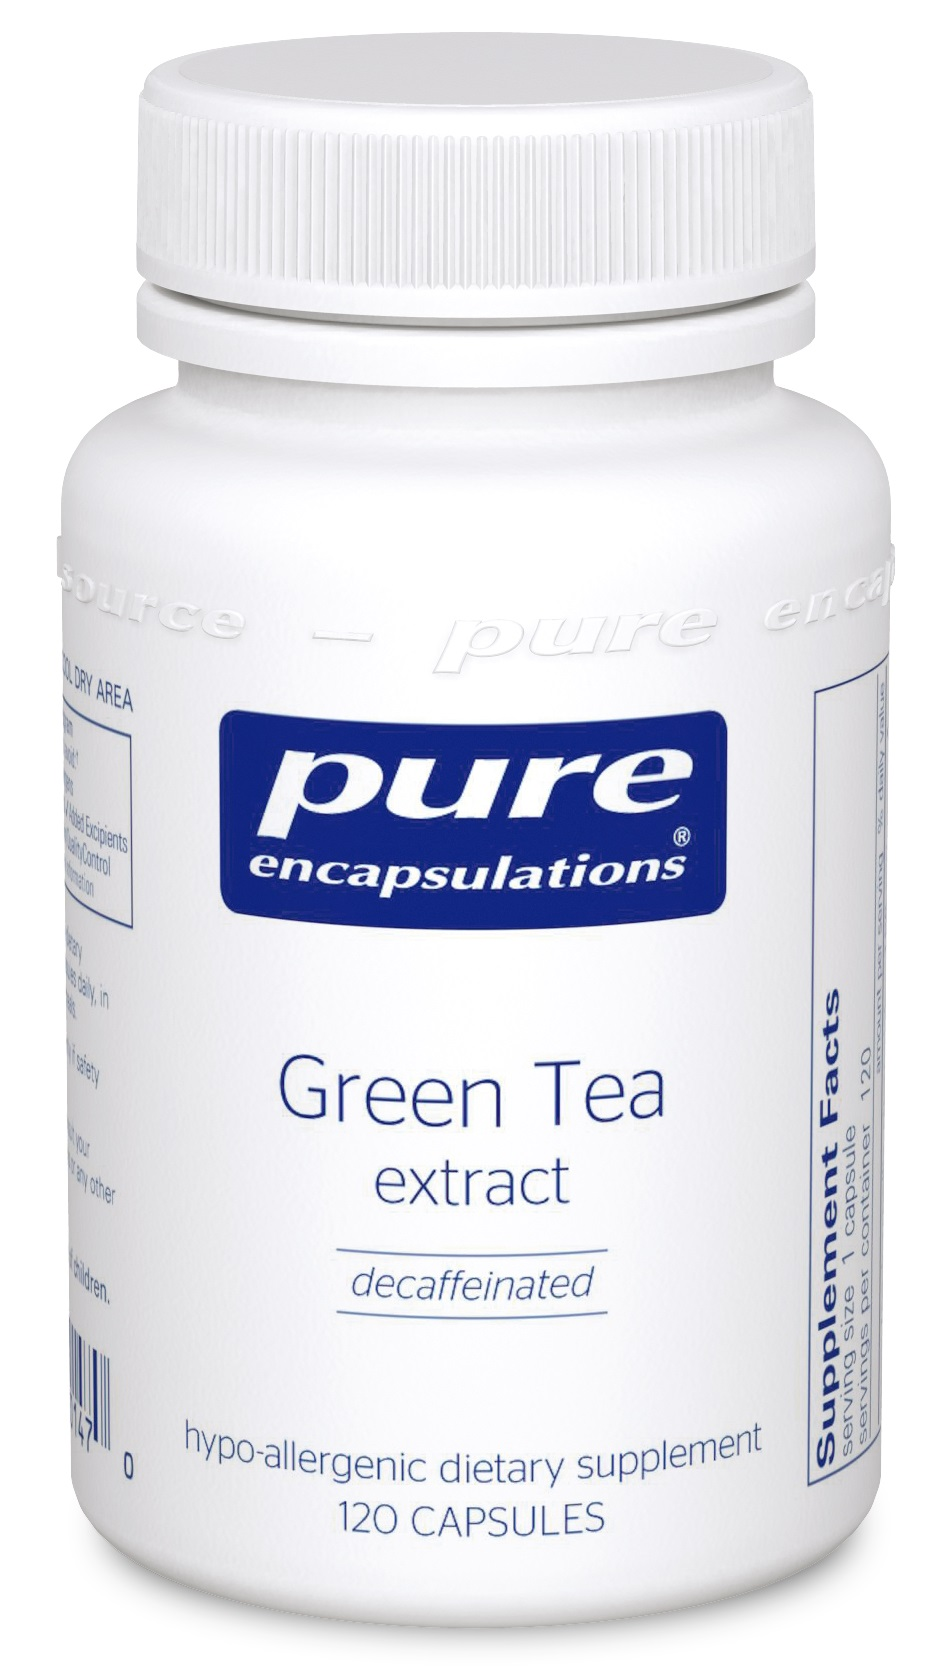 Pure Encapsulations Green Tea extract (decaffeinated)